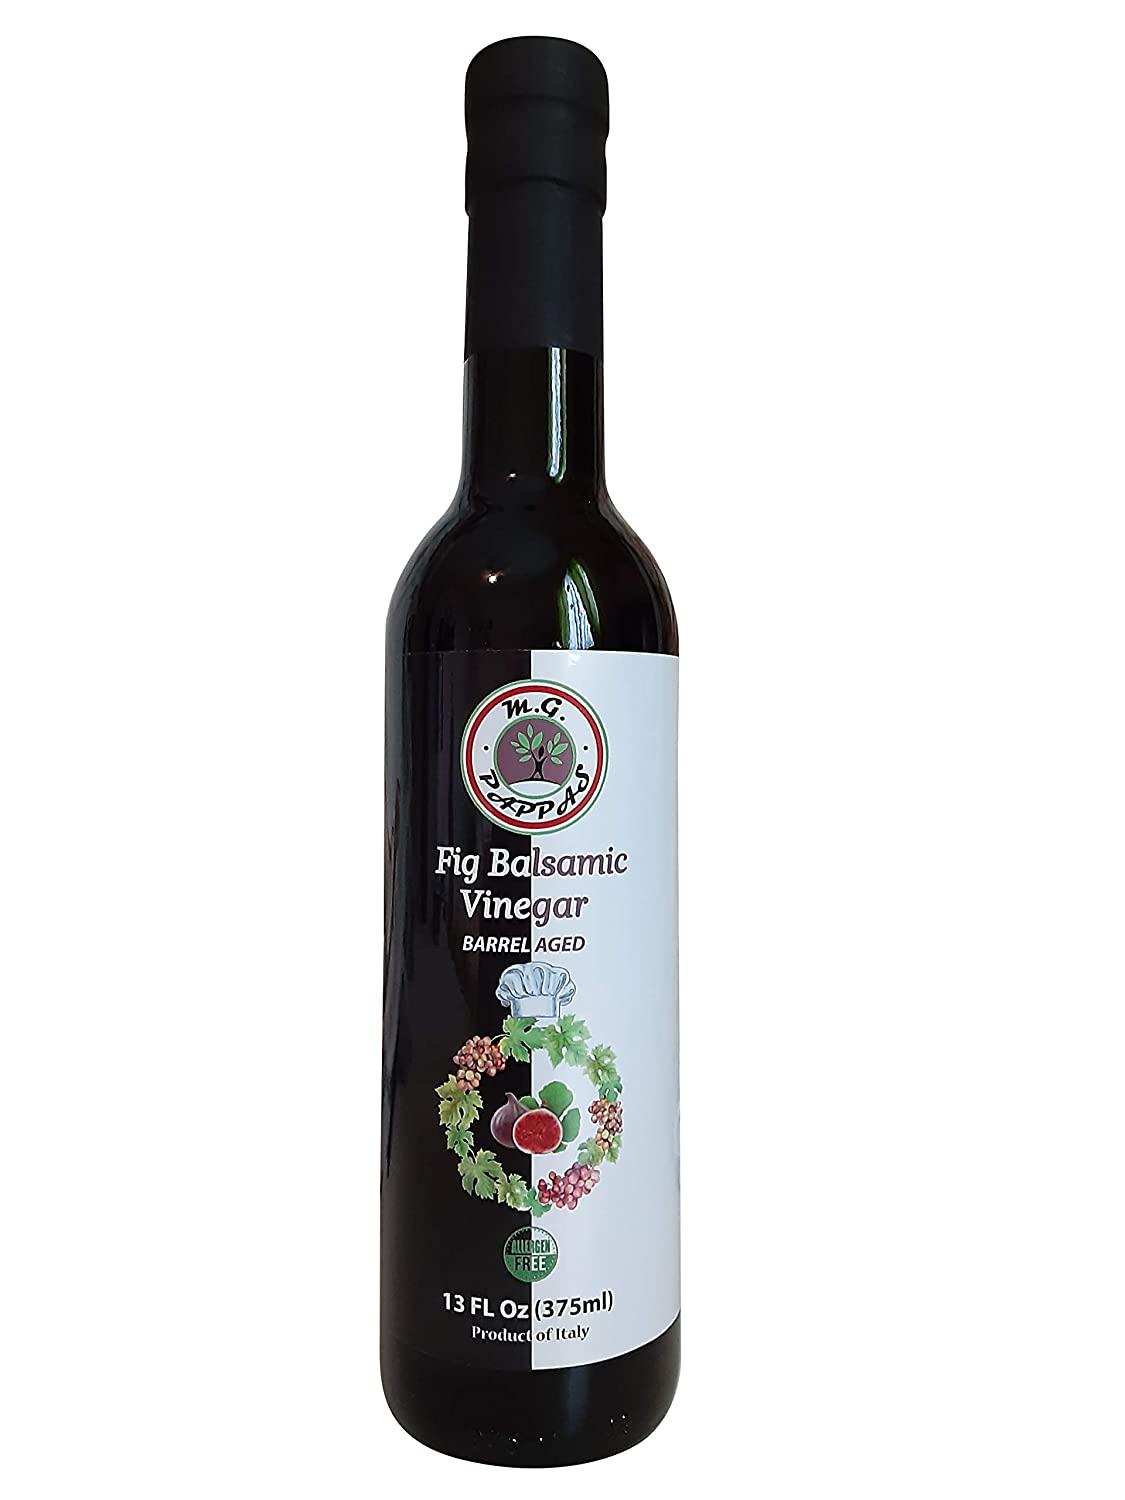 M.G. PAPPAS Fig Balsamic Vinegar of Modena Aged Flavored Thick Sweet Barrel Syrup Italian Allergens Free 13 Oz 375ml